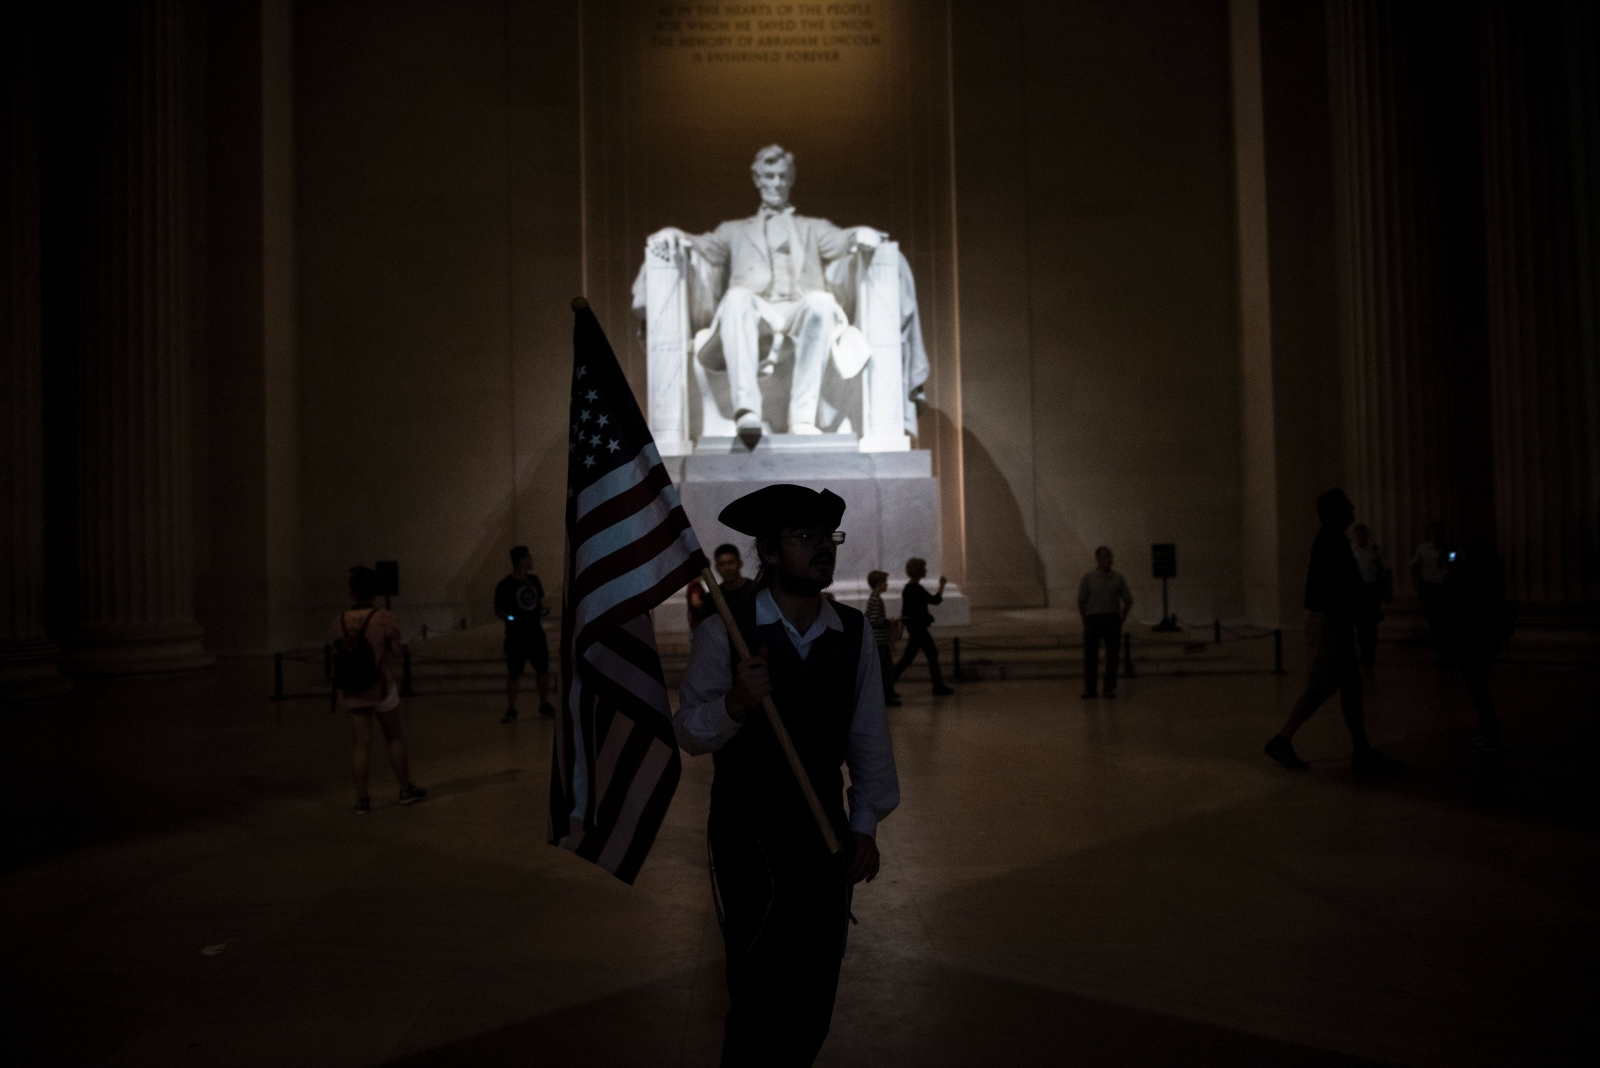 Lincoln Memorial In Washington Is Vandalised Days After